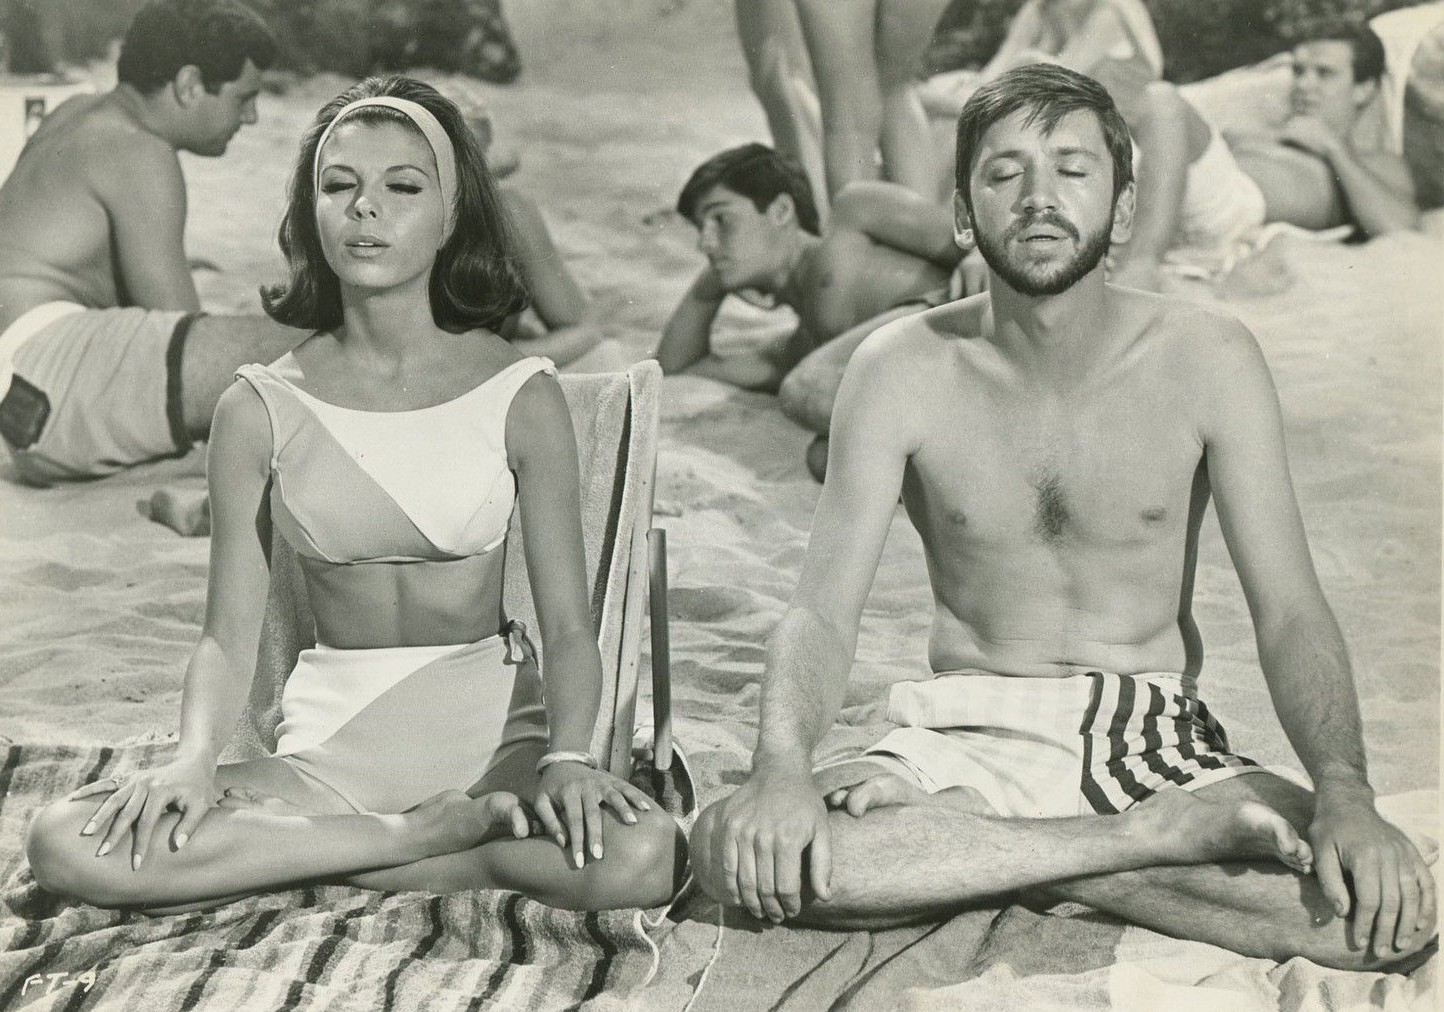 https://beachmovies.files.wordpress.com/2015/07/for-those-who-think-young-_64-nancy-sinatra-bob-denver-michael-nader-meditating-e1437277093297.jpg